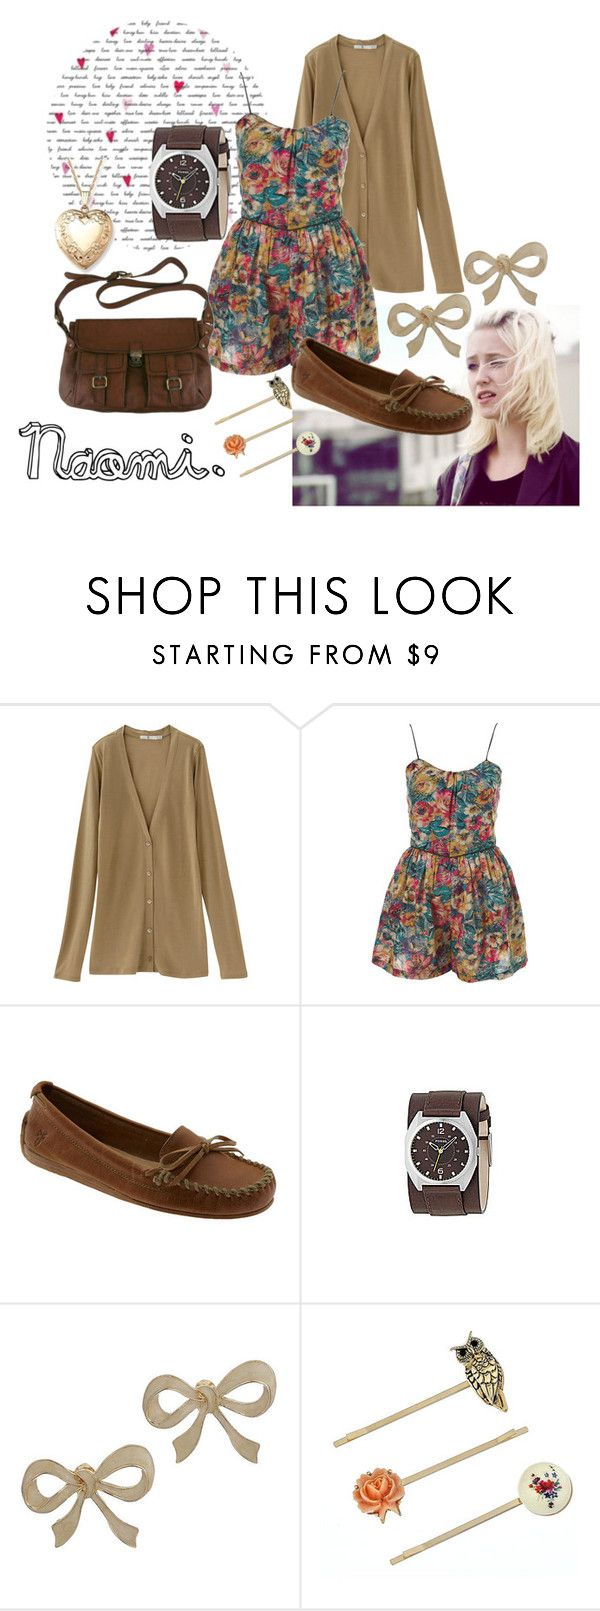 """""""Naomi"""" by whimsicalmadness ❤ liked on Polyvore featuring Uniqlo, By Emily, Topshop, Frye, Chie Mihara, FOSSIL, Miss Selfridge, playsuit, skins and brown"""